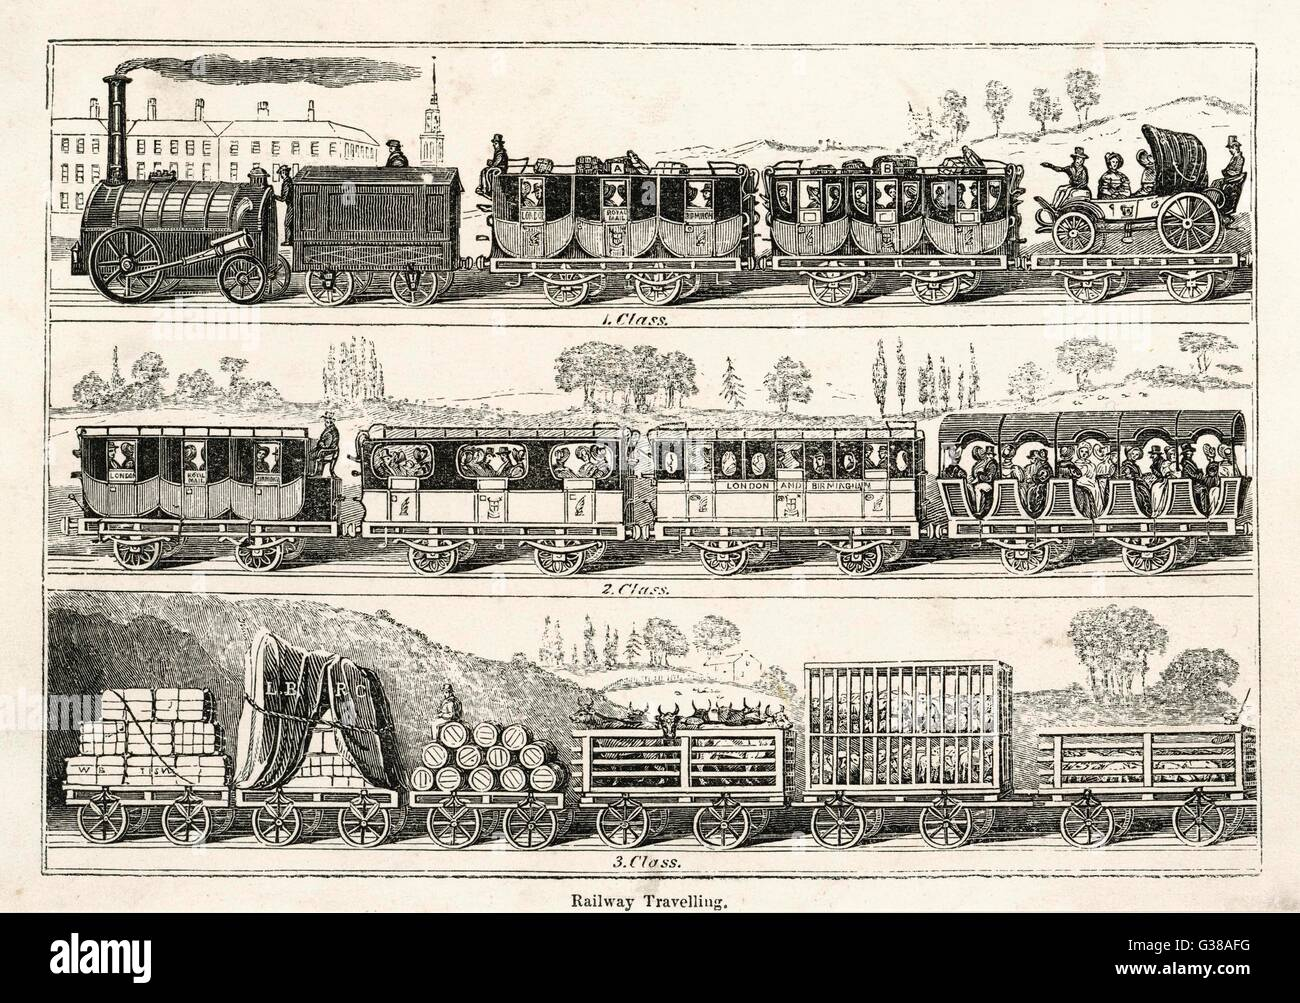 LONDON-BIRMINGHAM LINE Three classes of passenger  coach, and a variety of wagons  for freight and livestock.   - Stock Image